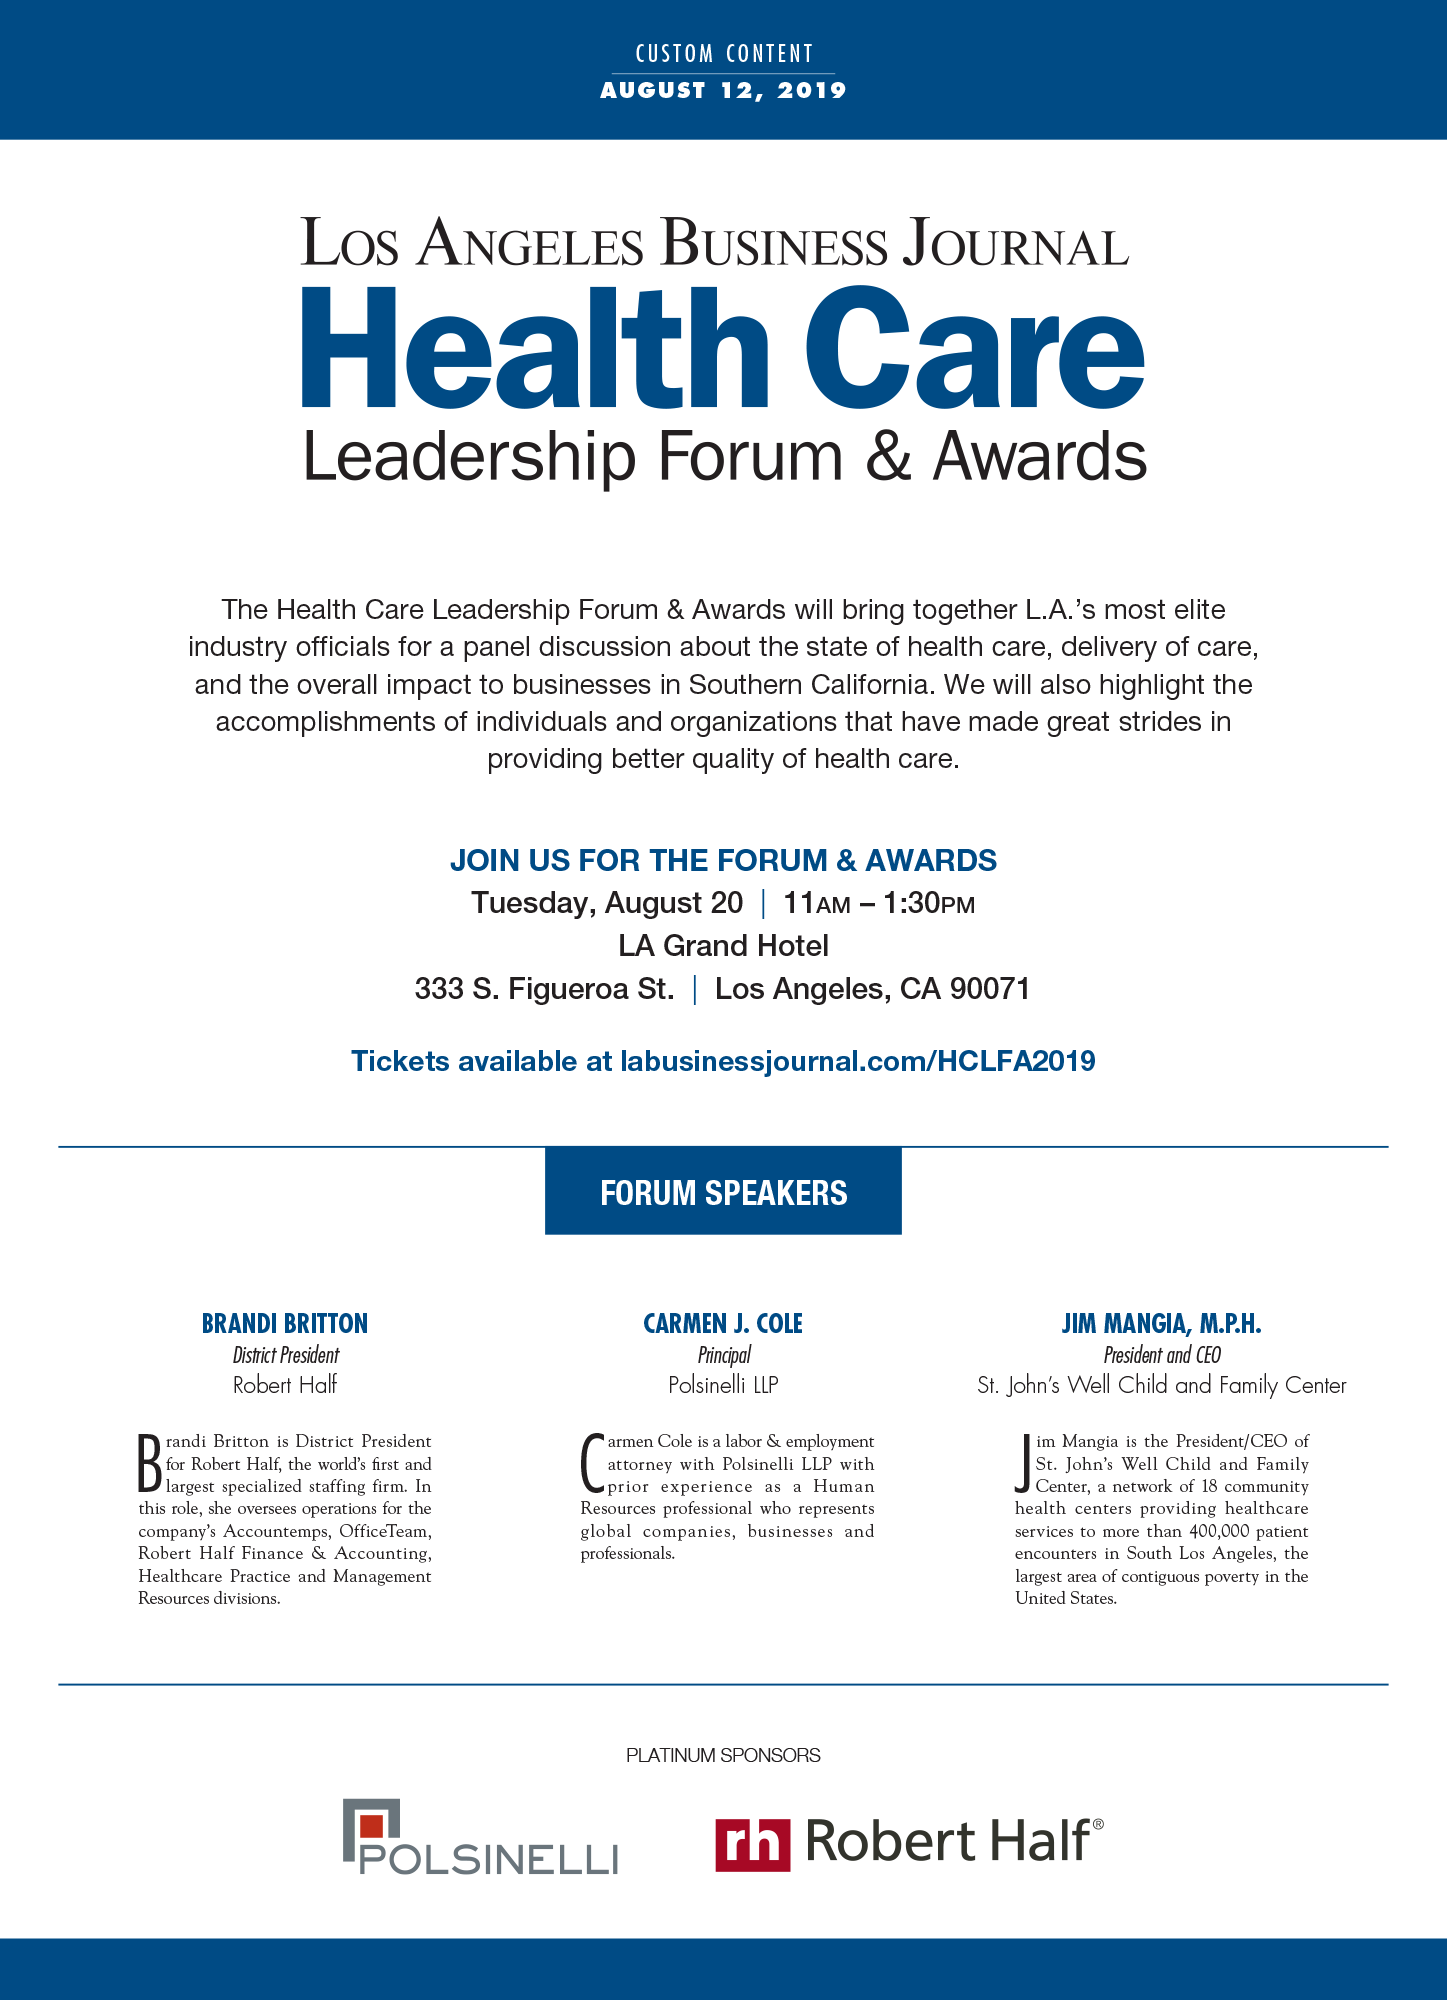 Health Care Leadership Forum Awards Los Angeles Business Journal